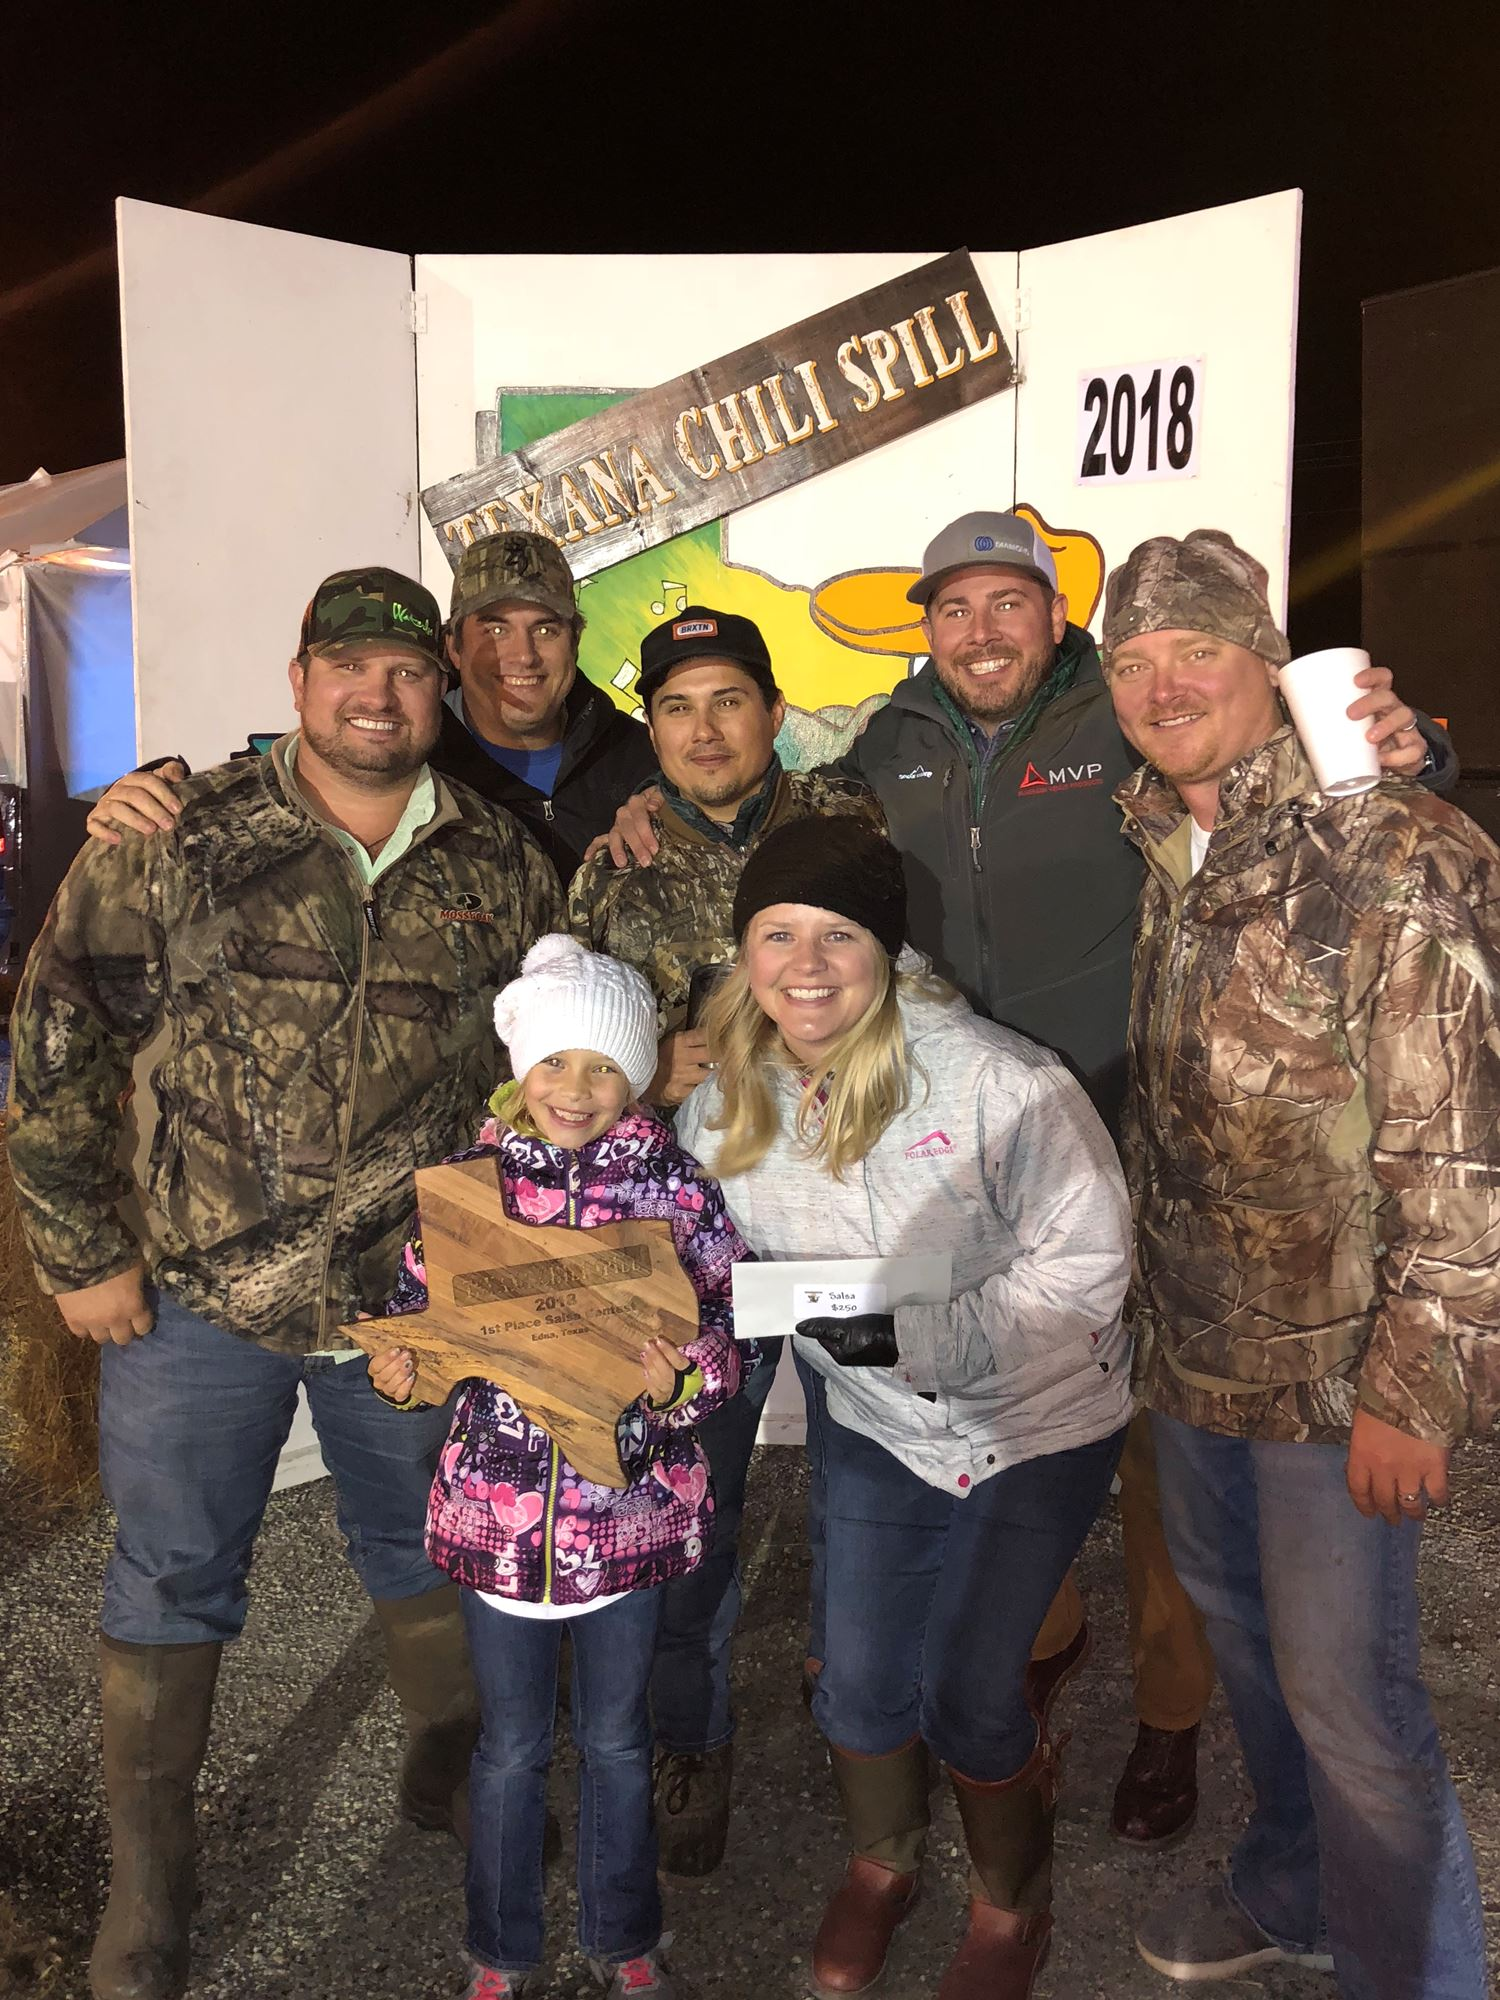 Texana Chili Spill Cook-Off